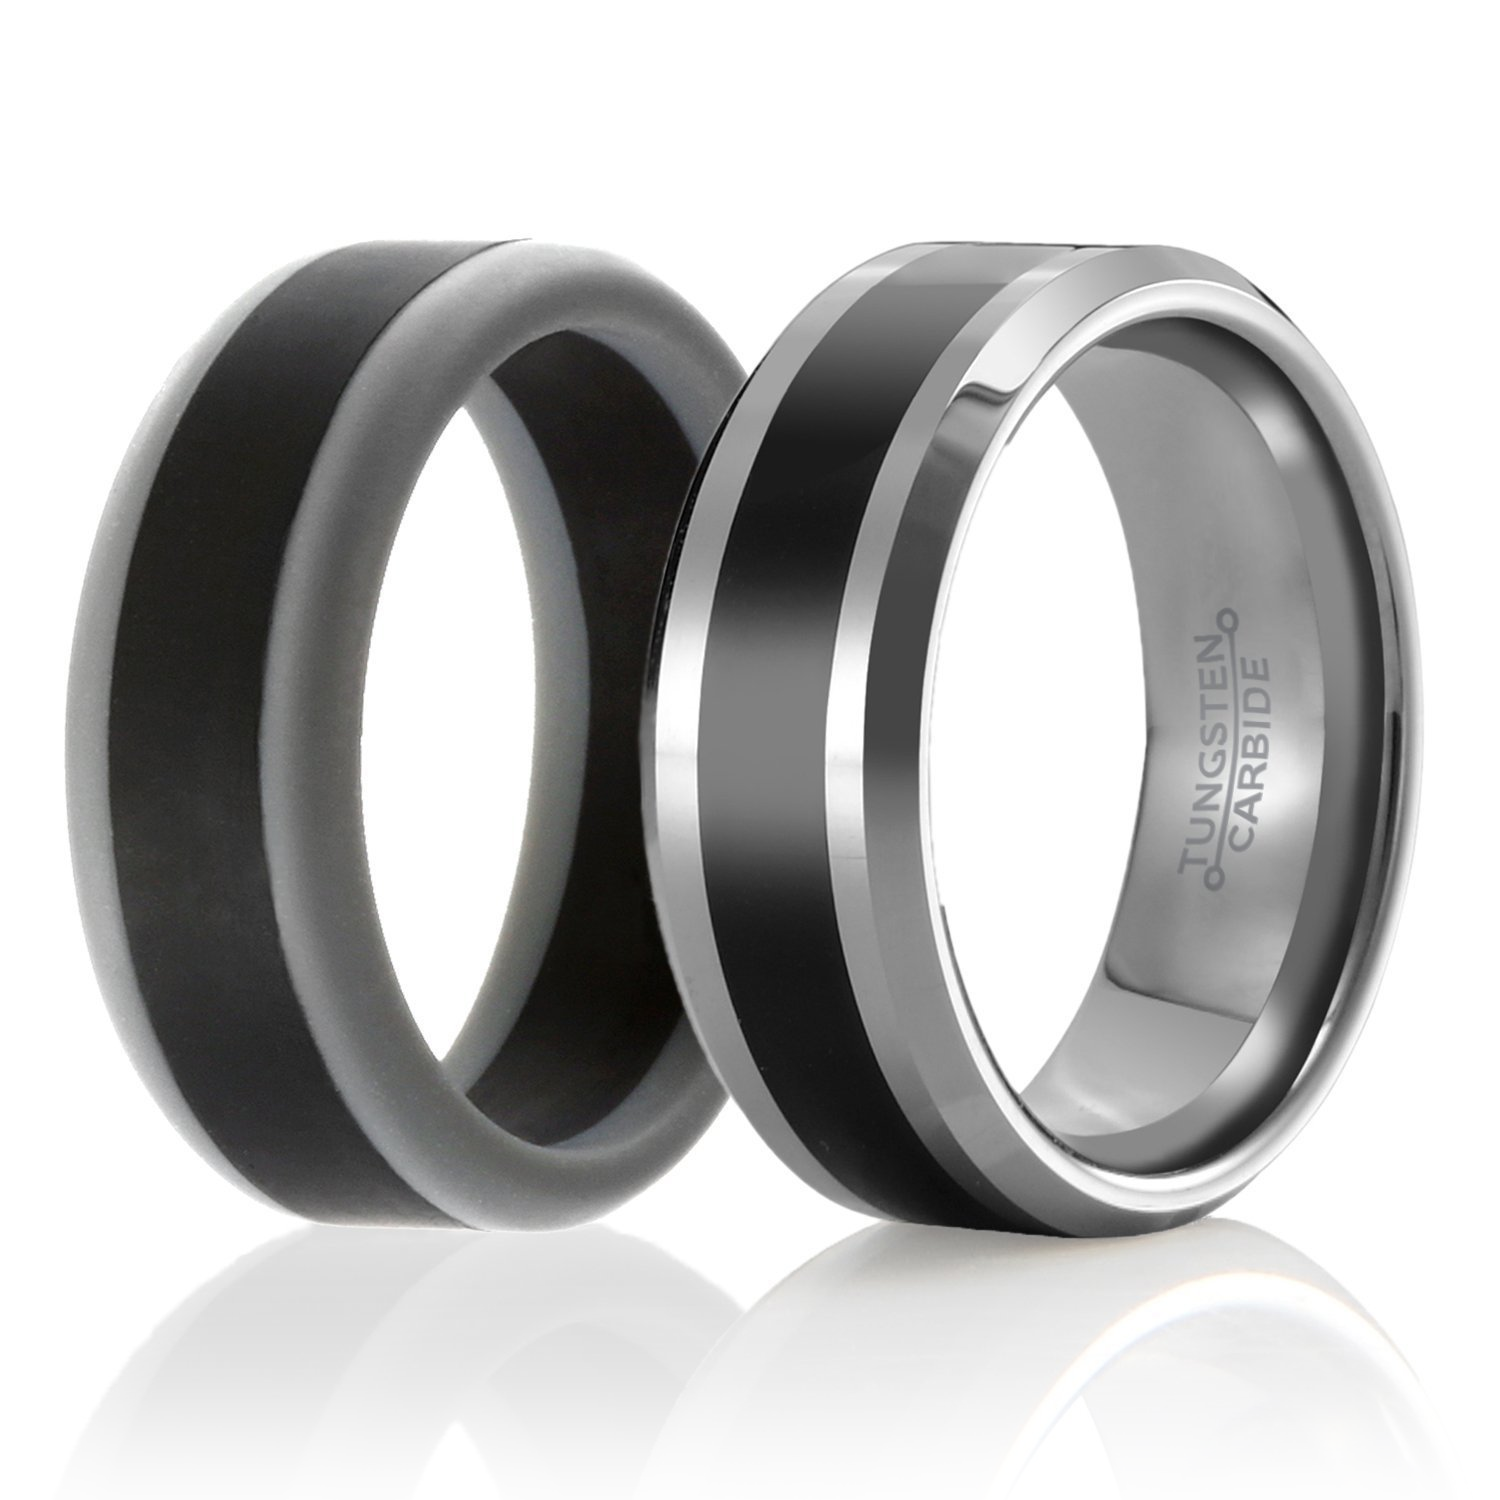 j r s textured ring men yates zirconium black by zaboda hammer mens finish bands